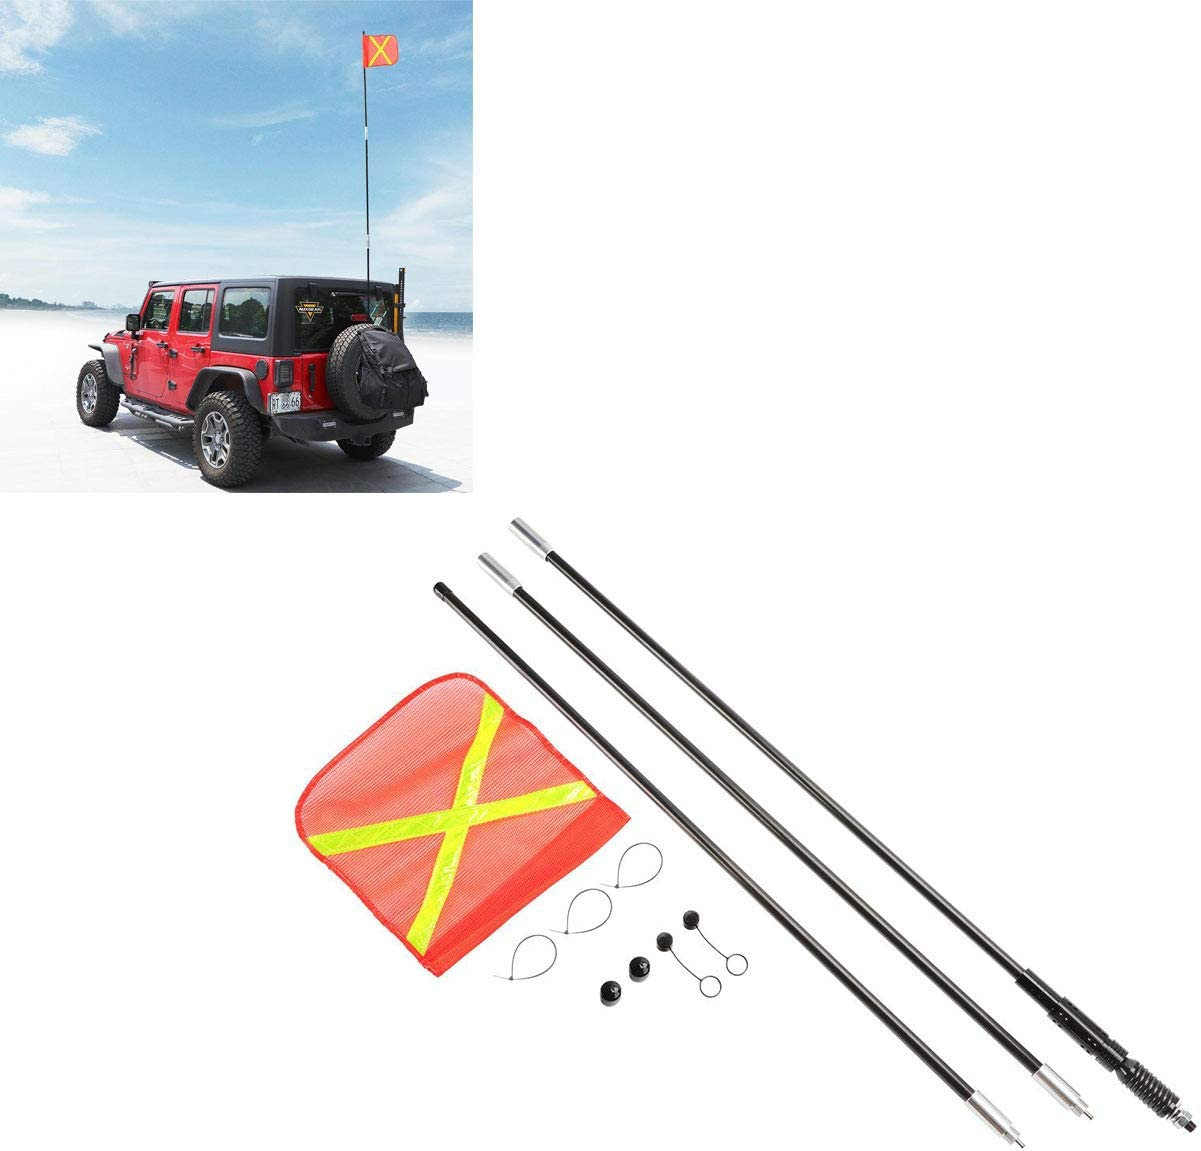 TOPAUP Sand Flags Pole 3M Flagpole Safety Flag for Car Offroad Snowmobile Motorcycle Outdoor